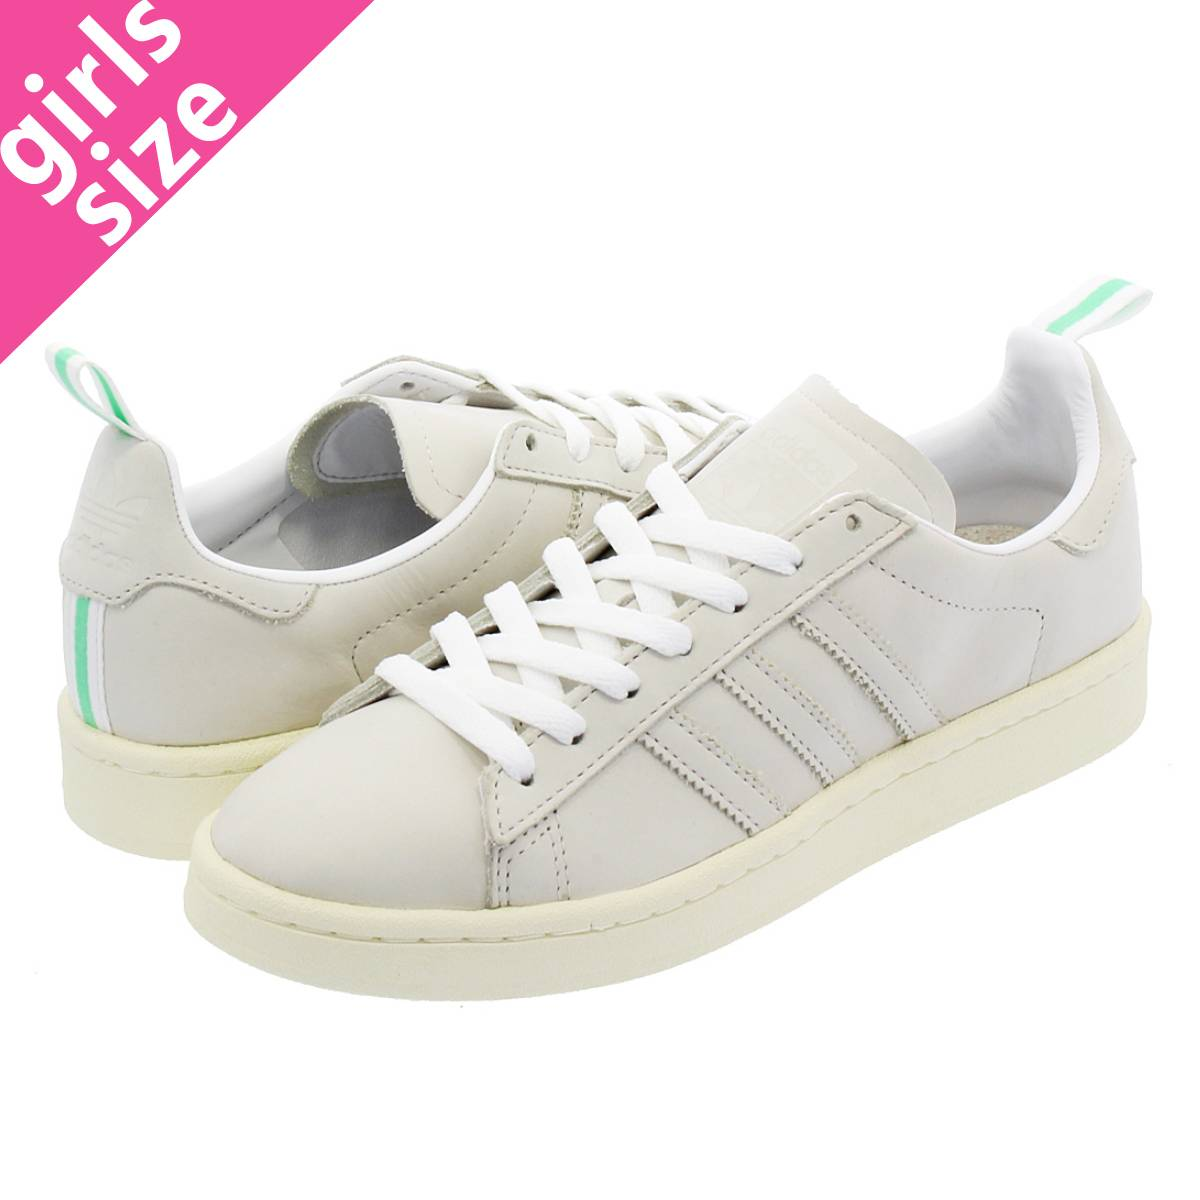 レディース靴, スニーカー adidas CAMPUS adidas Originals RUNNING WHITEVINTAGE WHITEVINTAGE WHITE